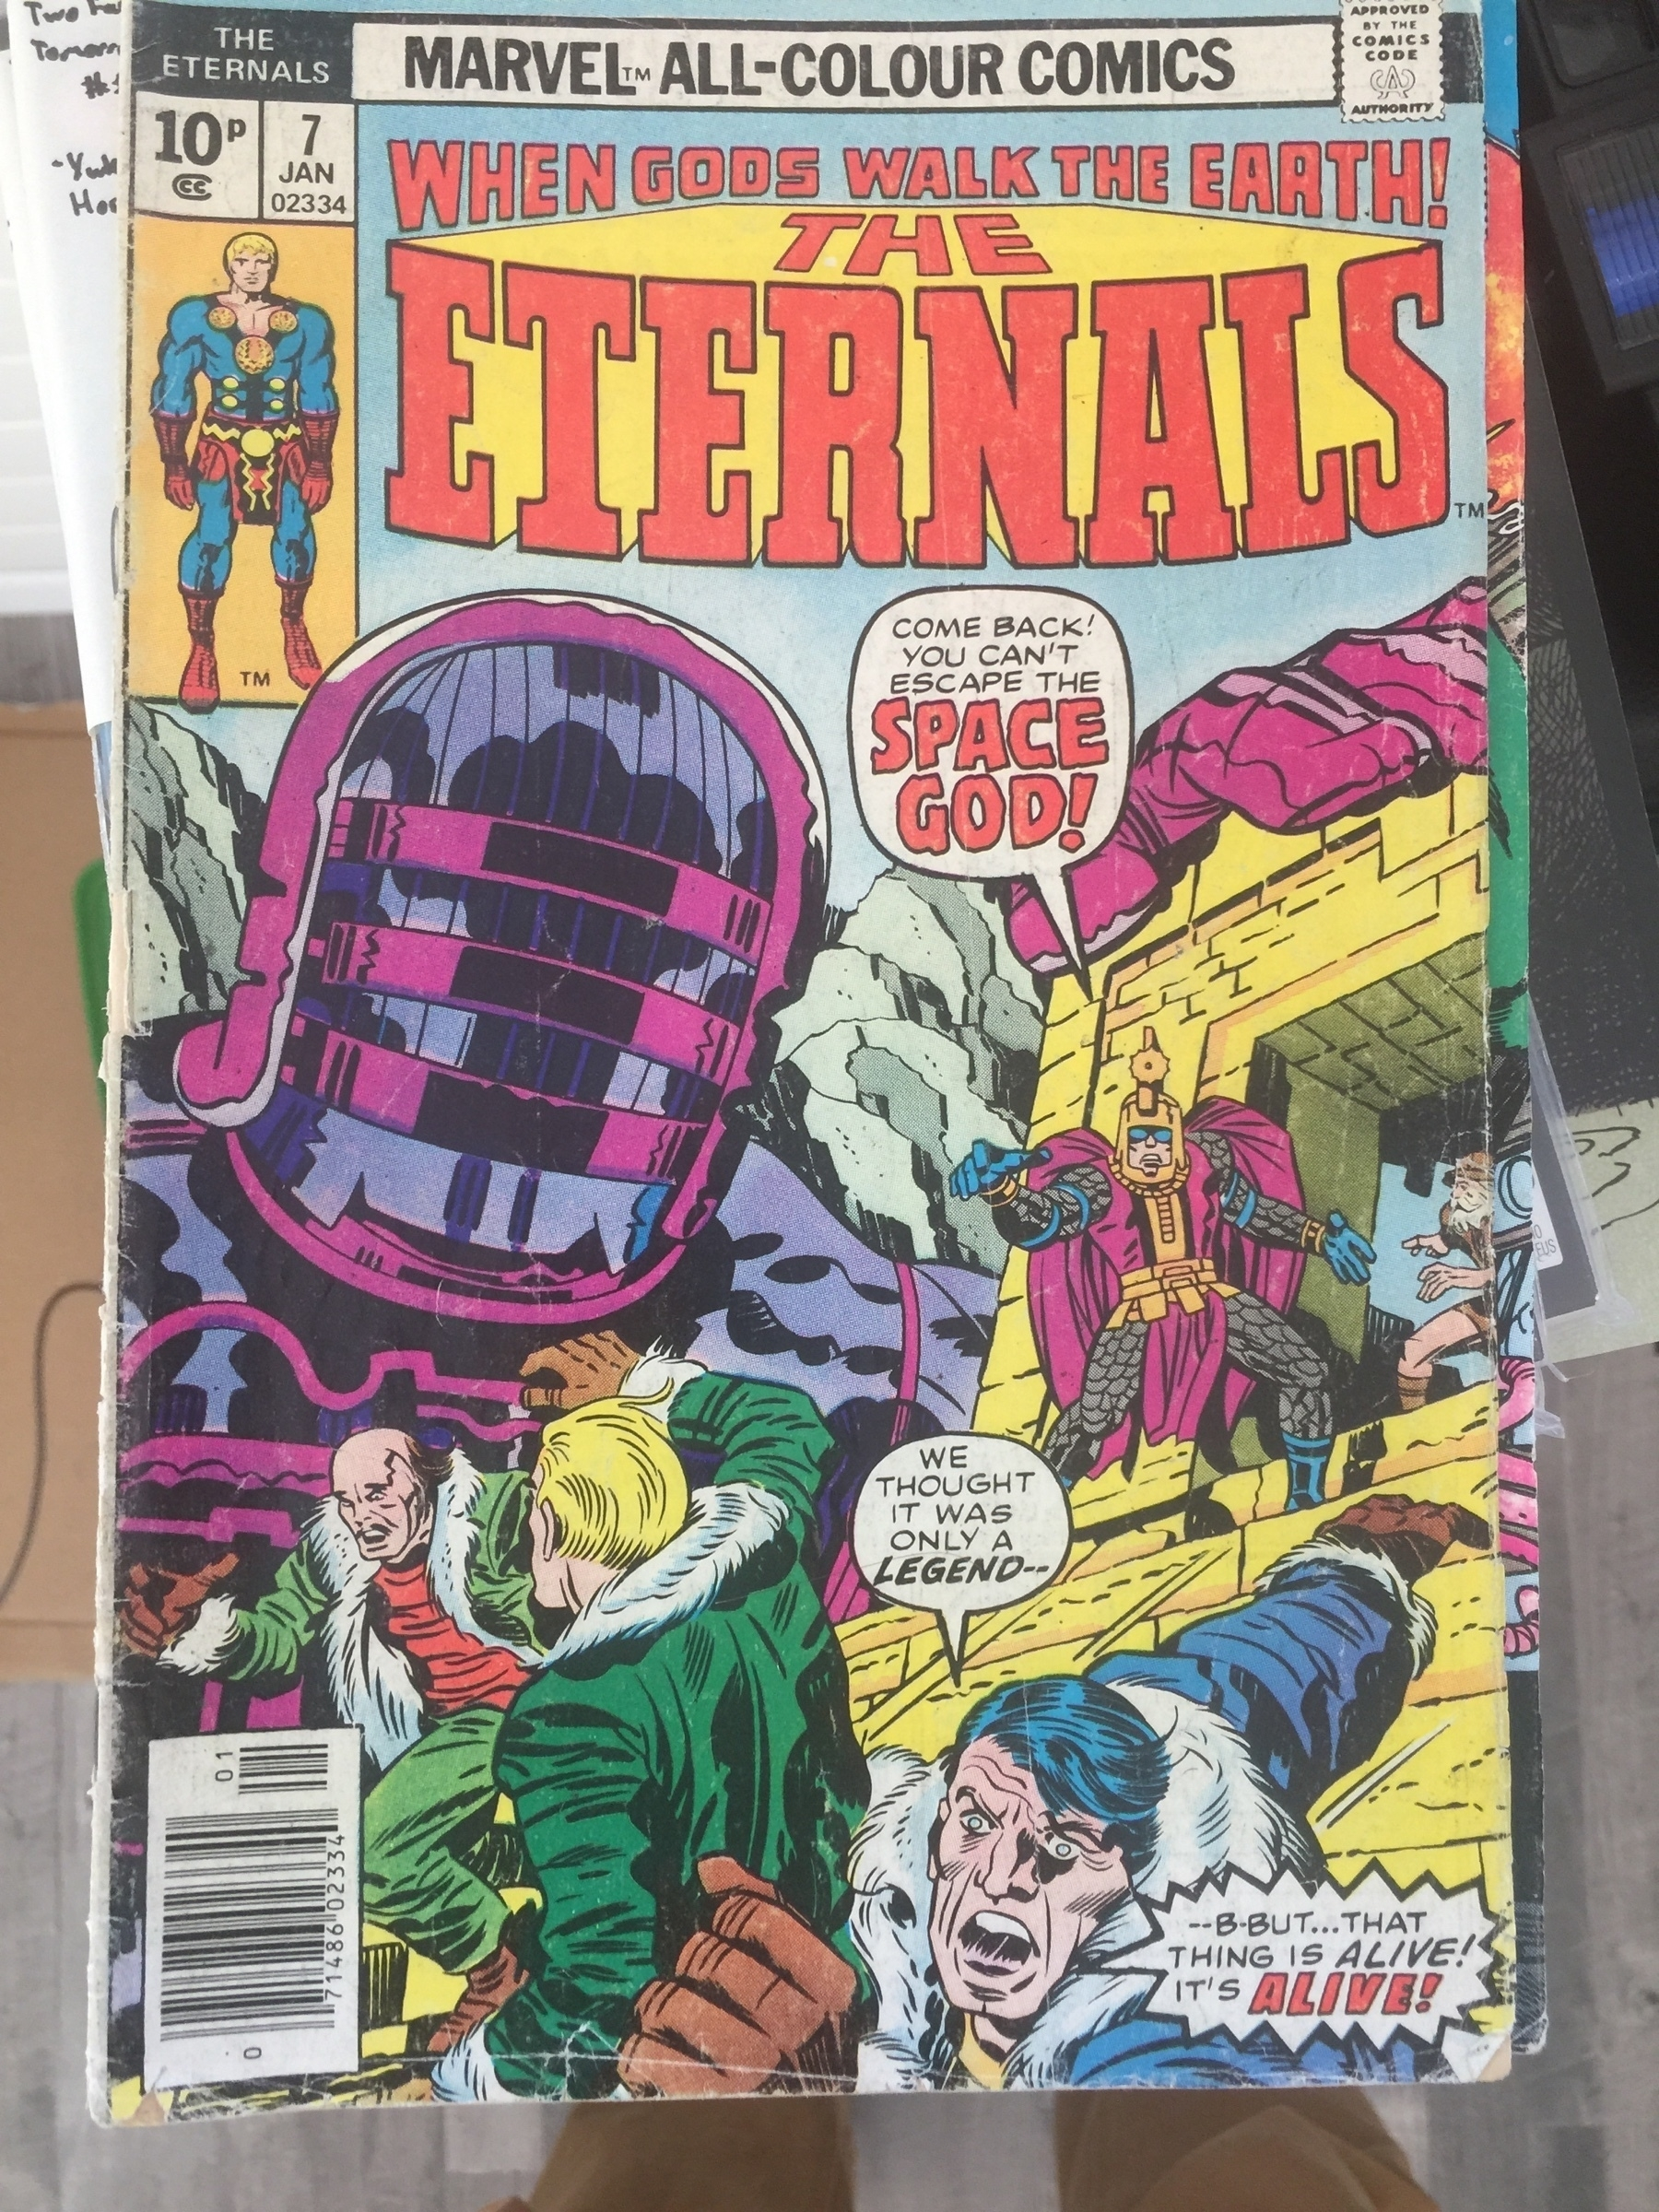 the cover of Jack Kirby Eternals #7